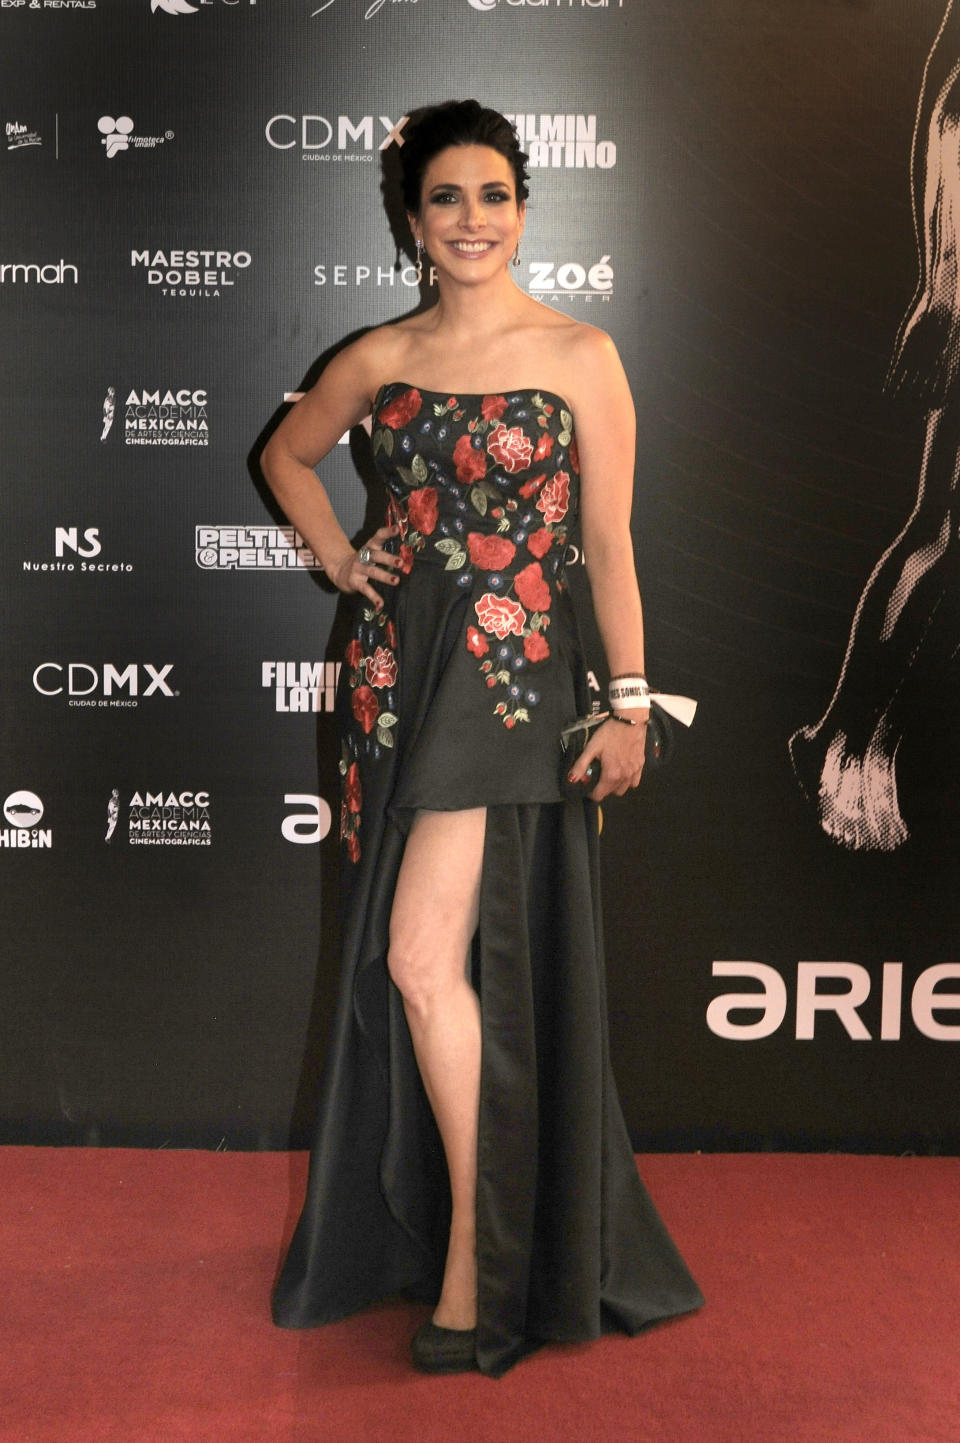 MEXICO CITY, MEXICO - JUNE 5: Mexican actress Verónica Toussaint poses during the Red Carpet of 60th Ariel Awards at Palacio de Bellas Artes on June 5, 2018 in Mexico City, Mexico.  (Photo by Pedro Martin Gonzalez Castillo/Getty Images)